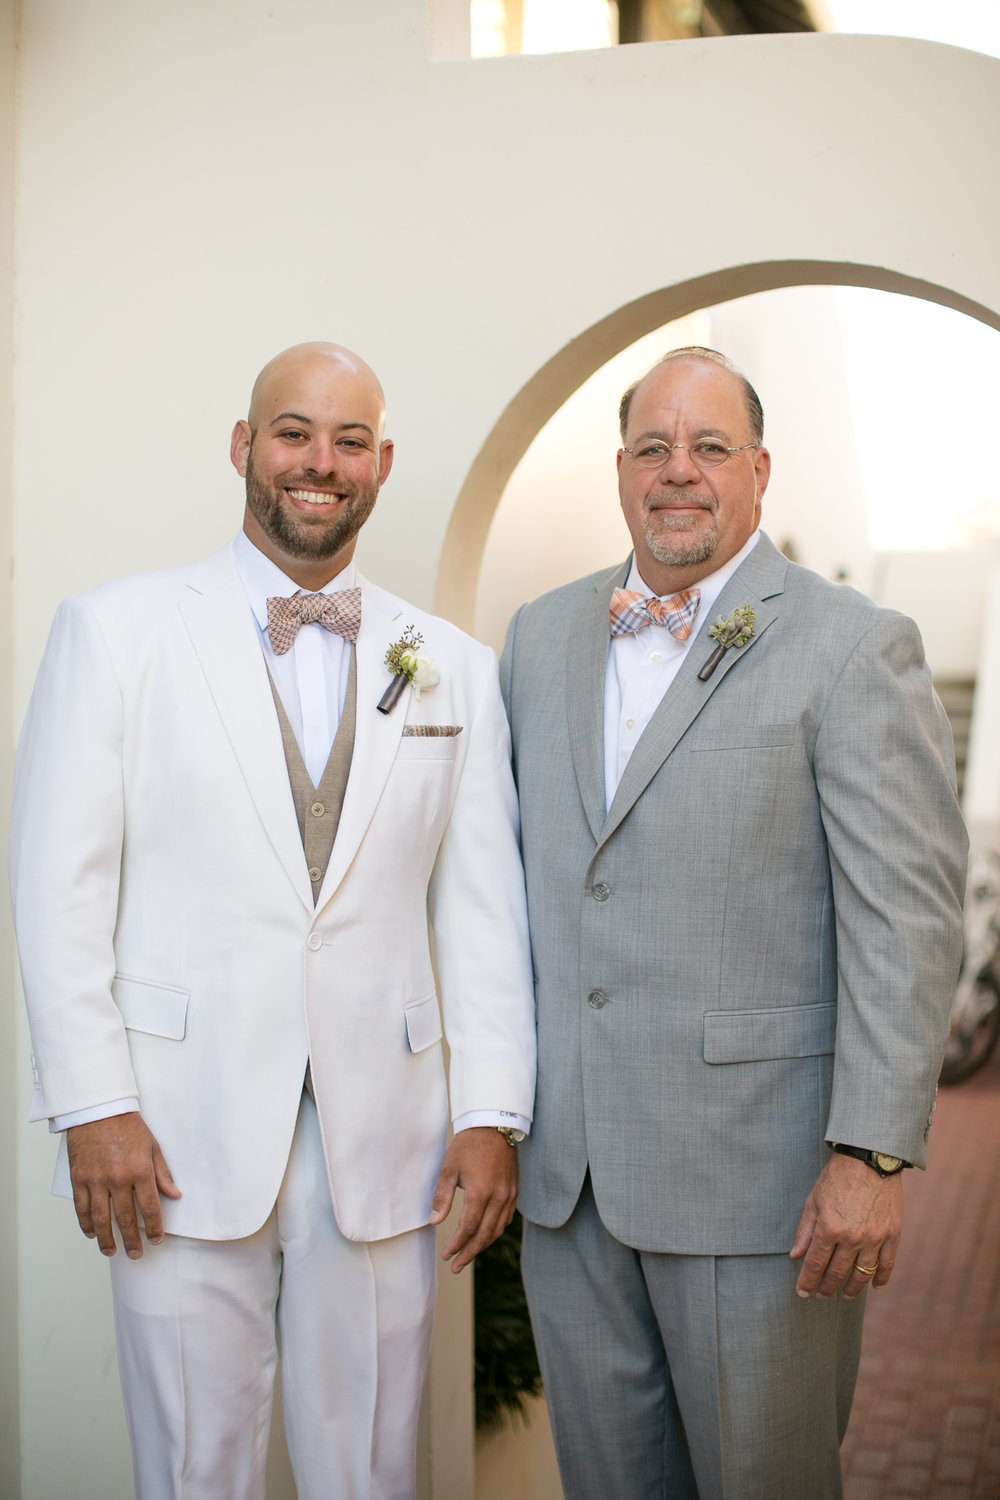 Eddie Marroquin captured this awesome photo of Chris and his Dad before our wedding.